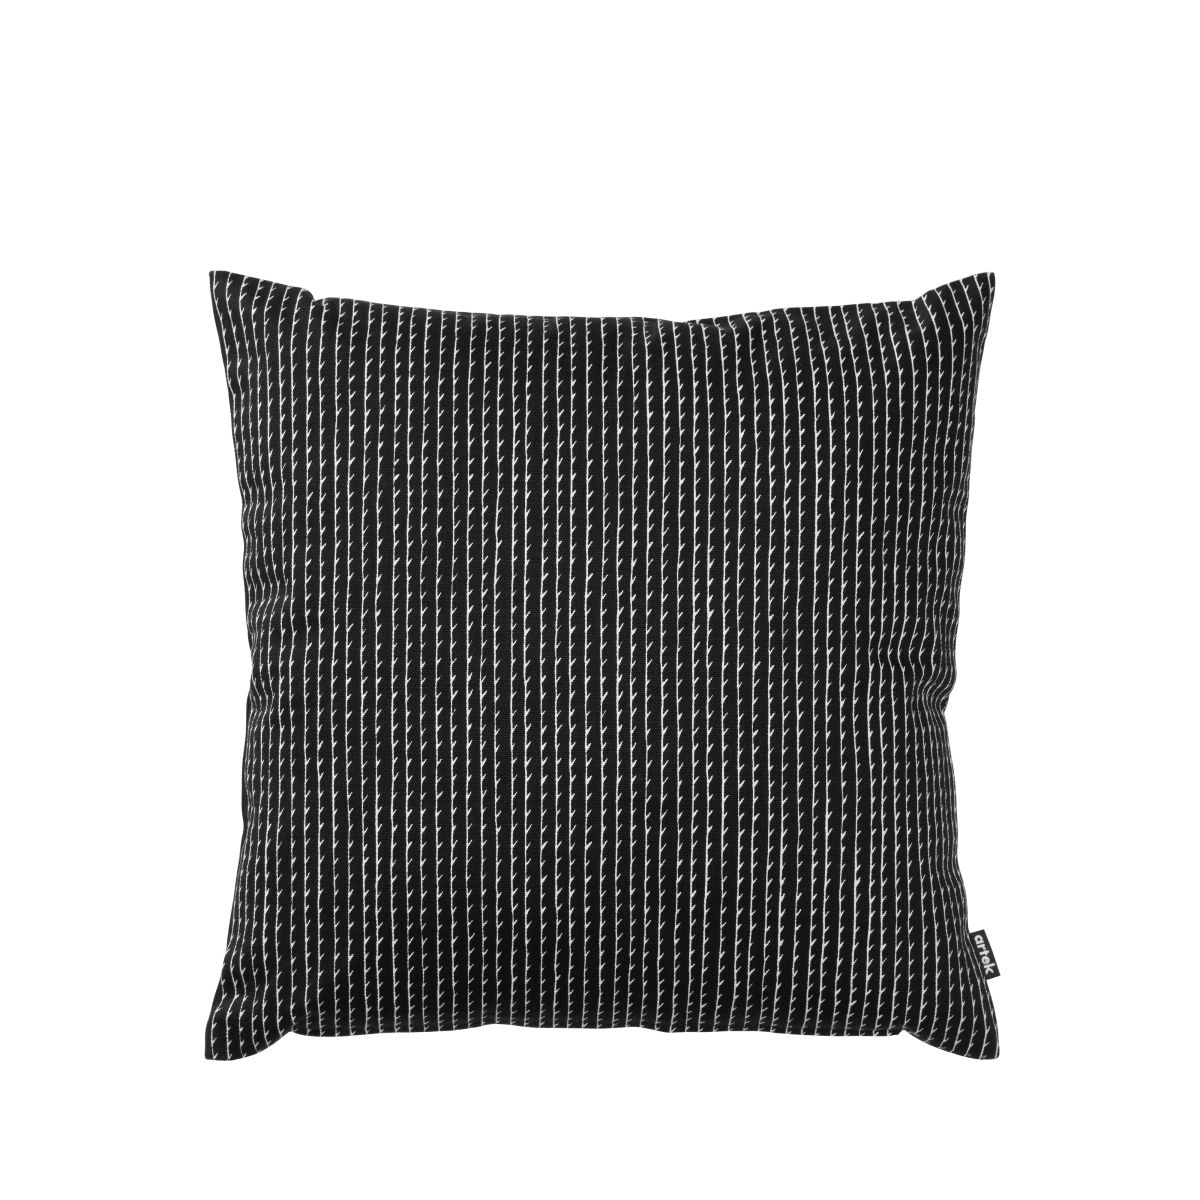 Rivi-Cushion-Cover-Black-_-White-Small_F_Web-2410976